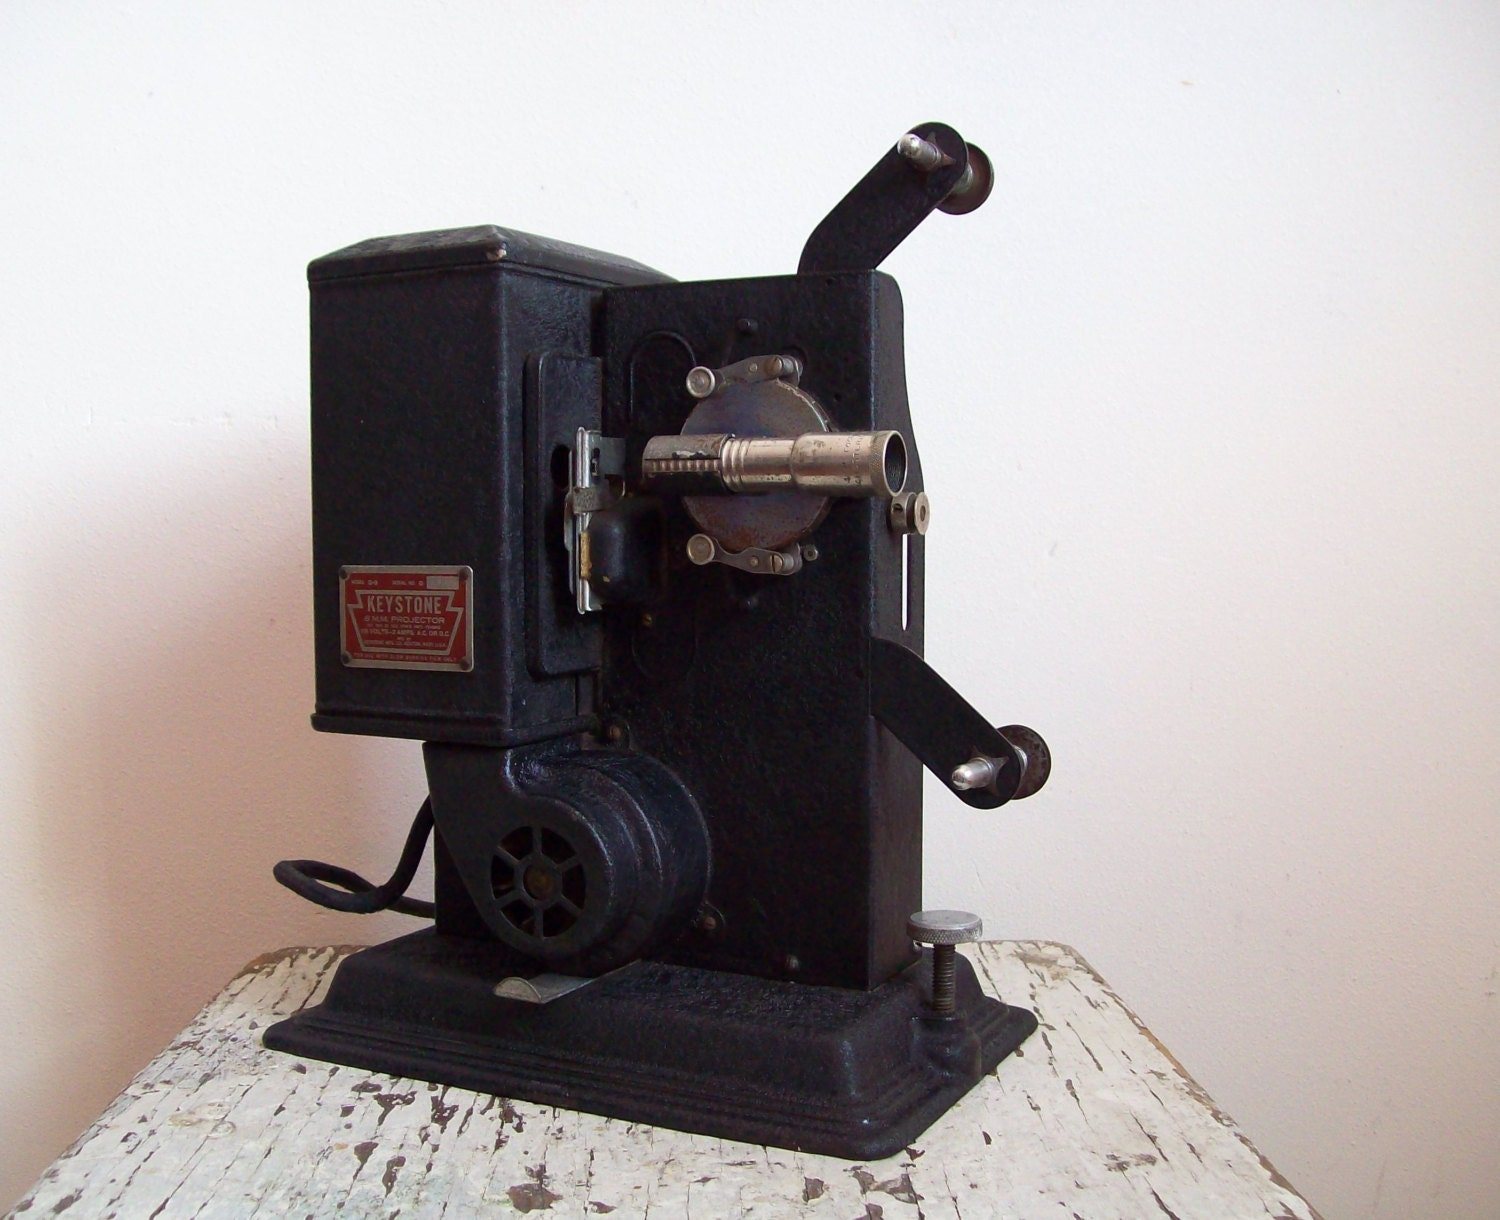 Antique movie projector keystone model g 8 1932 8 mm film for Movie photos for sale